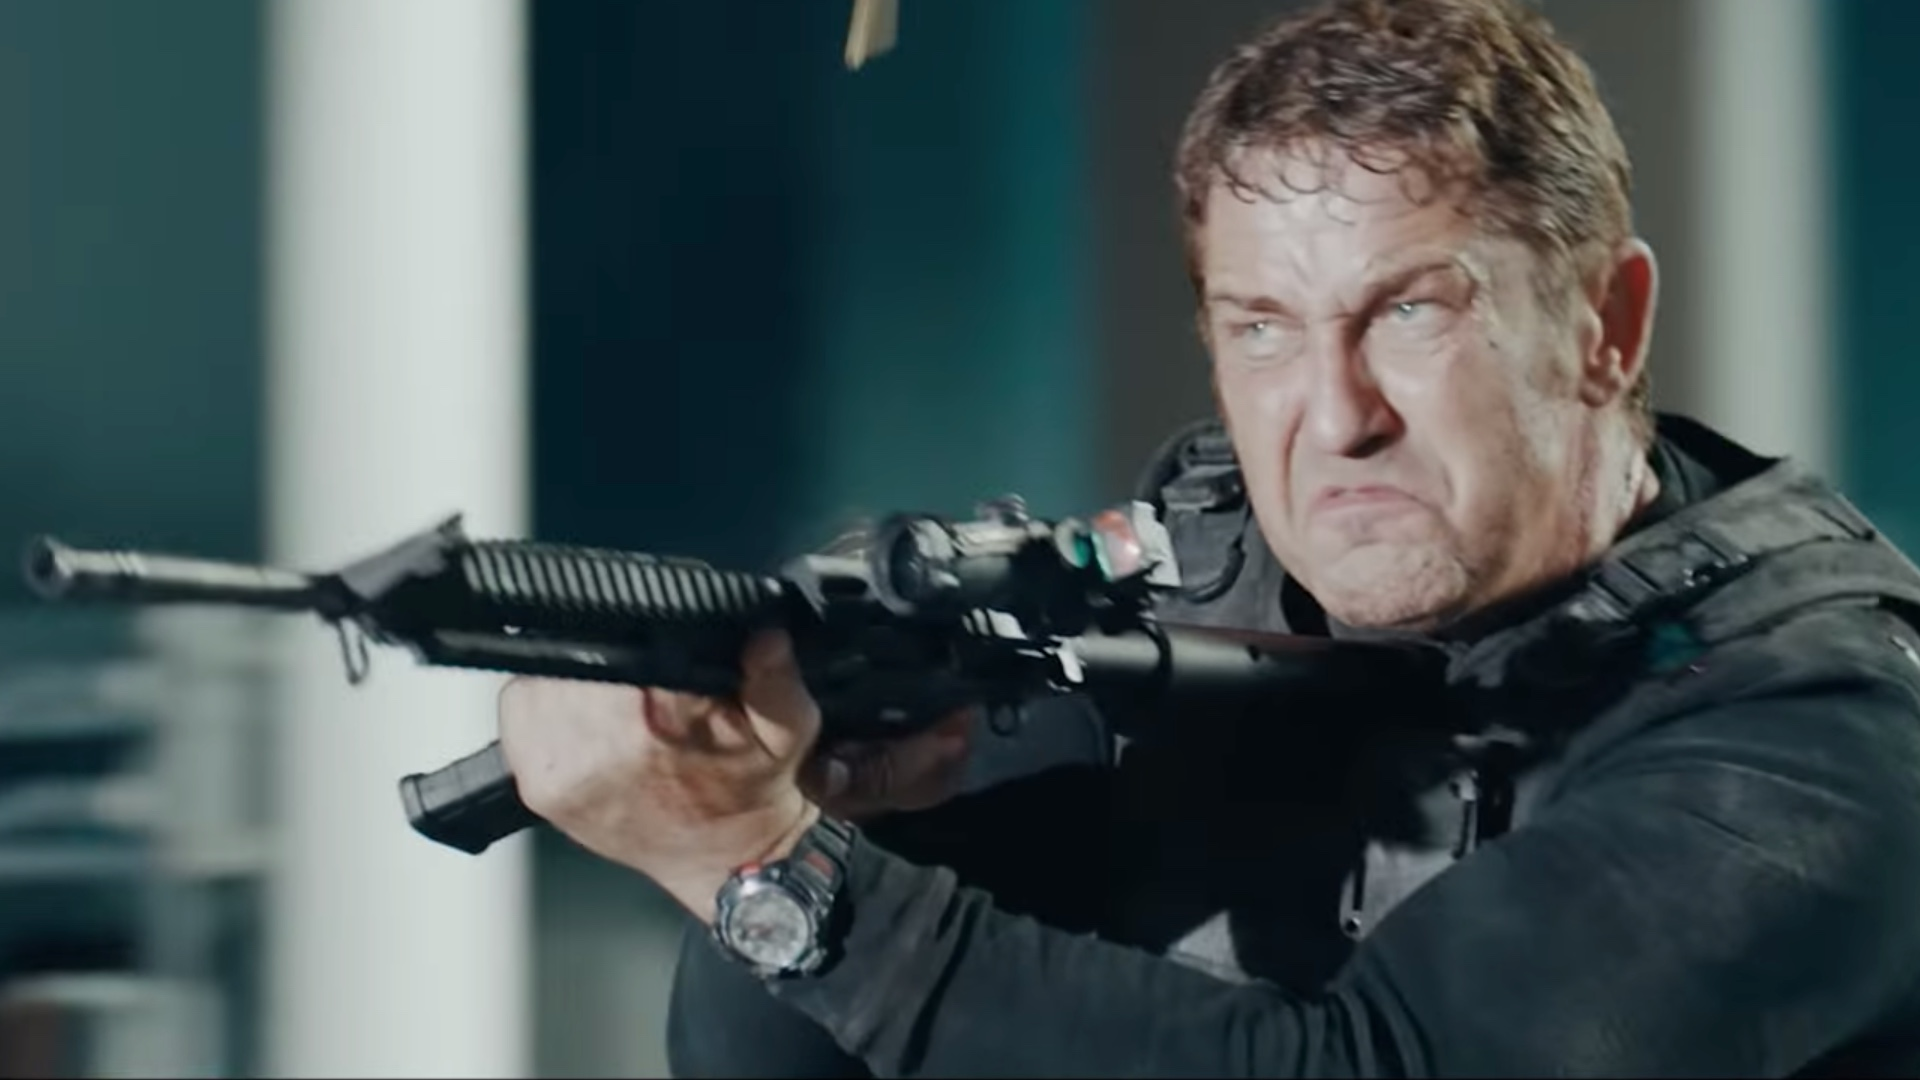 gerard-butler-is-back-in-action-in-the-trailer-for-angel-has-fallen-the-sequel-to-olympus-has-fallen-social.jpg